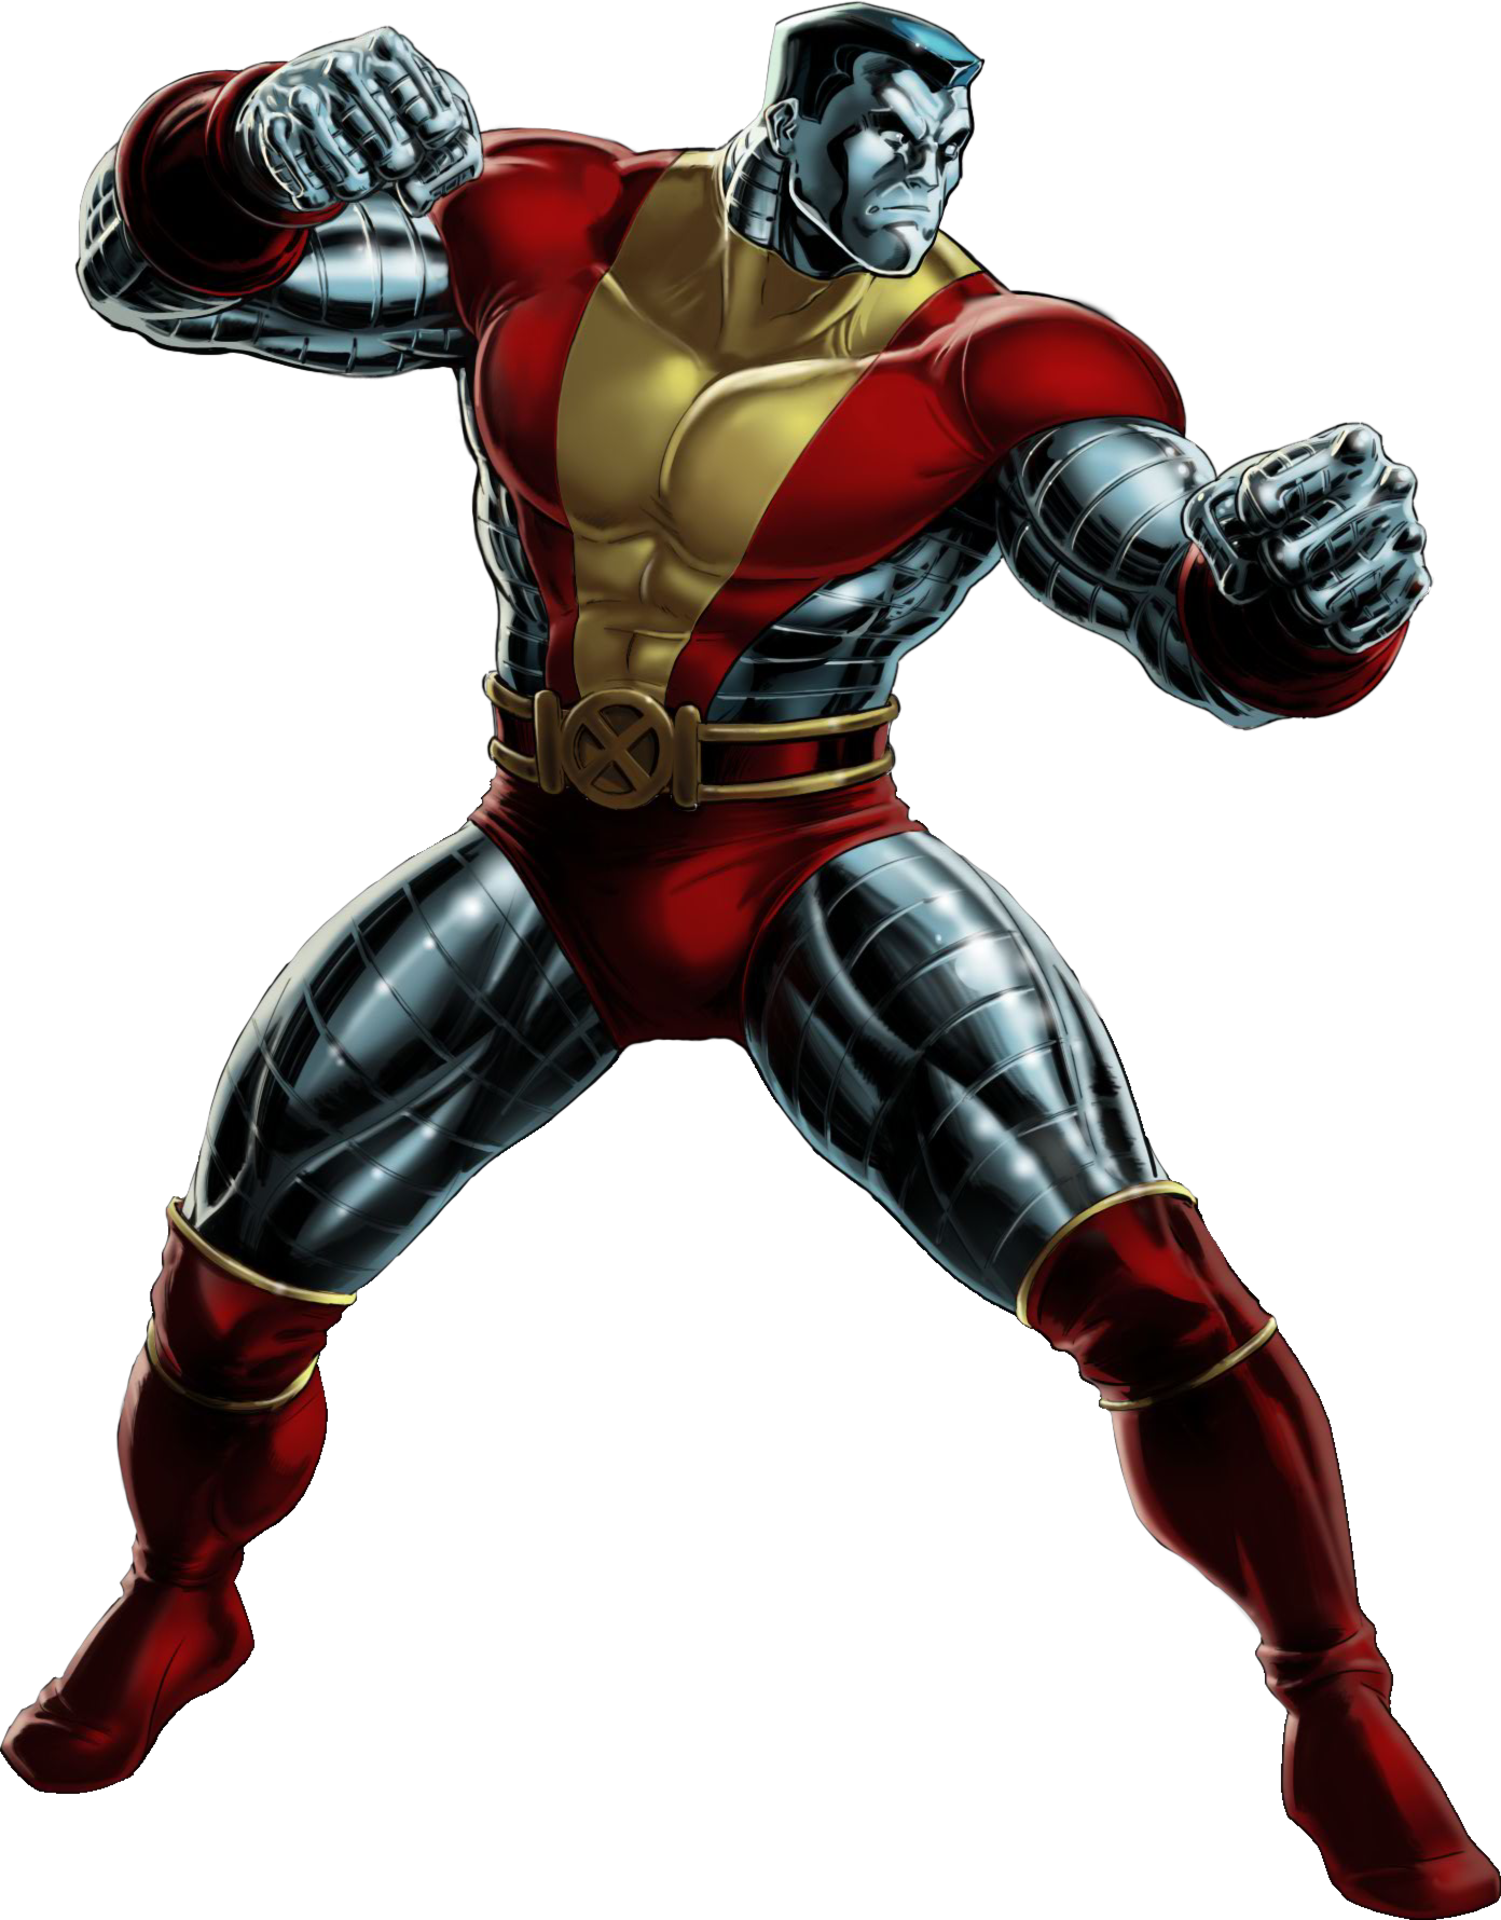 Transparent comic royalty free. Image marvel avengers alliance